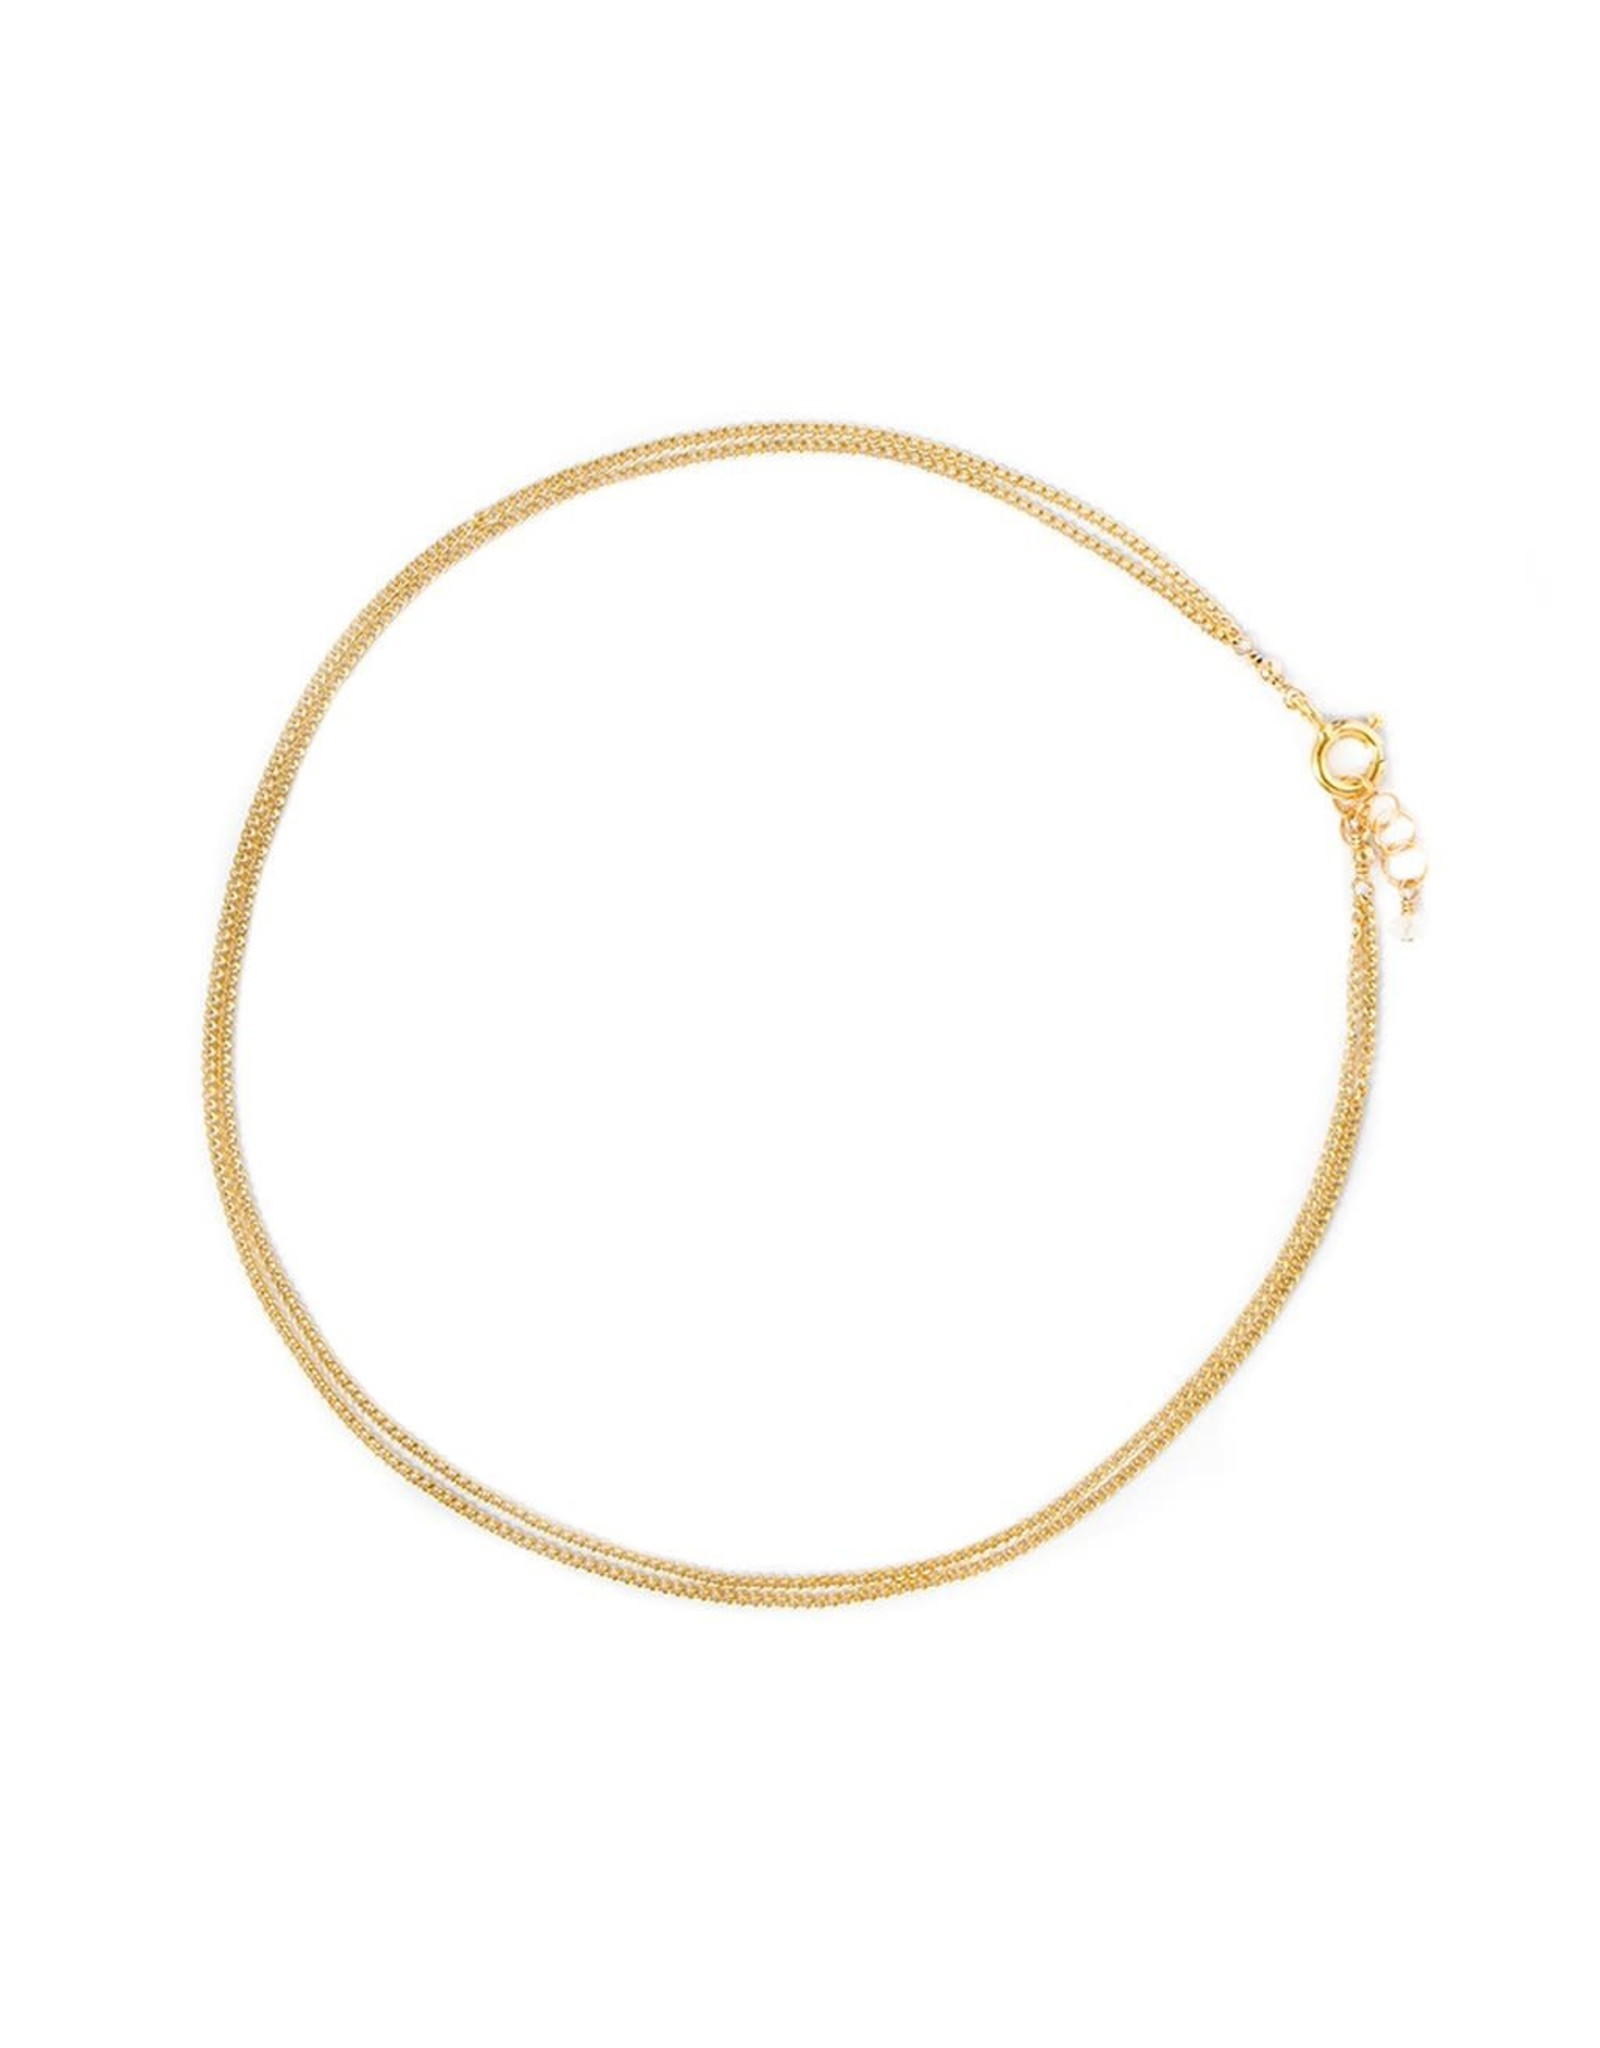 leah alexandra Layered Curb Anklet | Goldfill